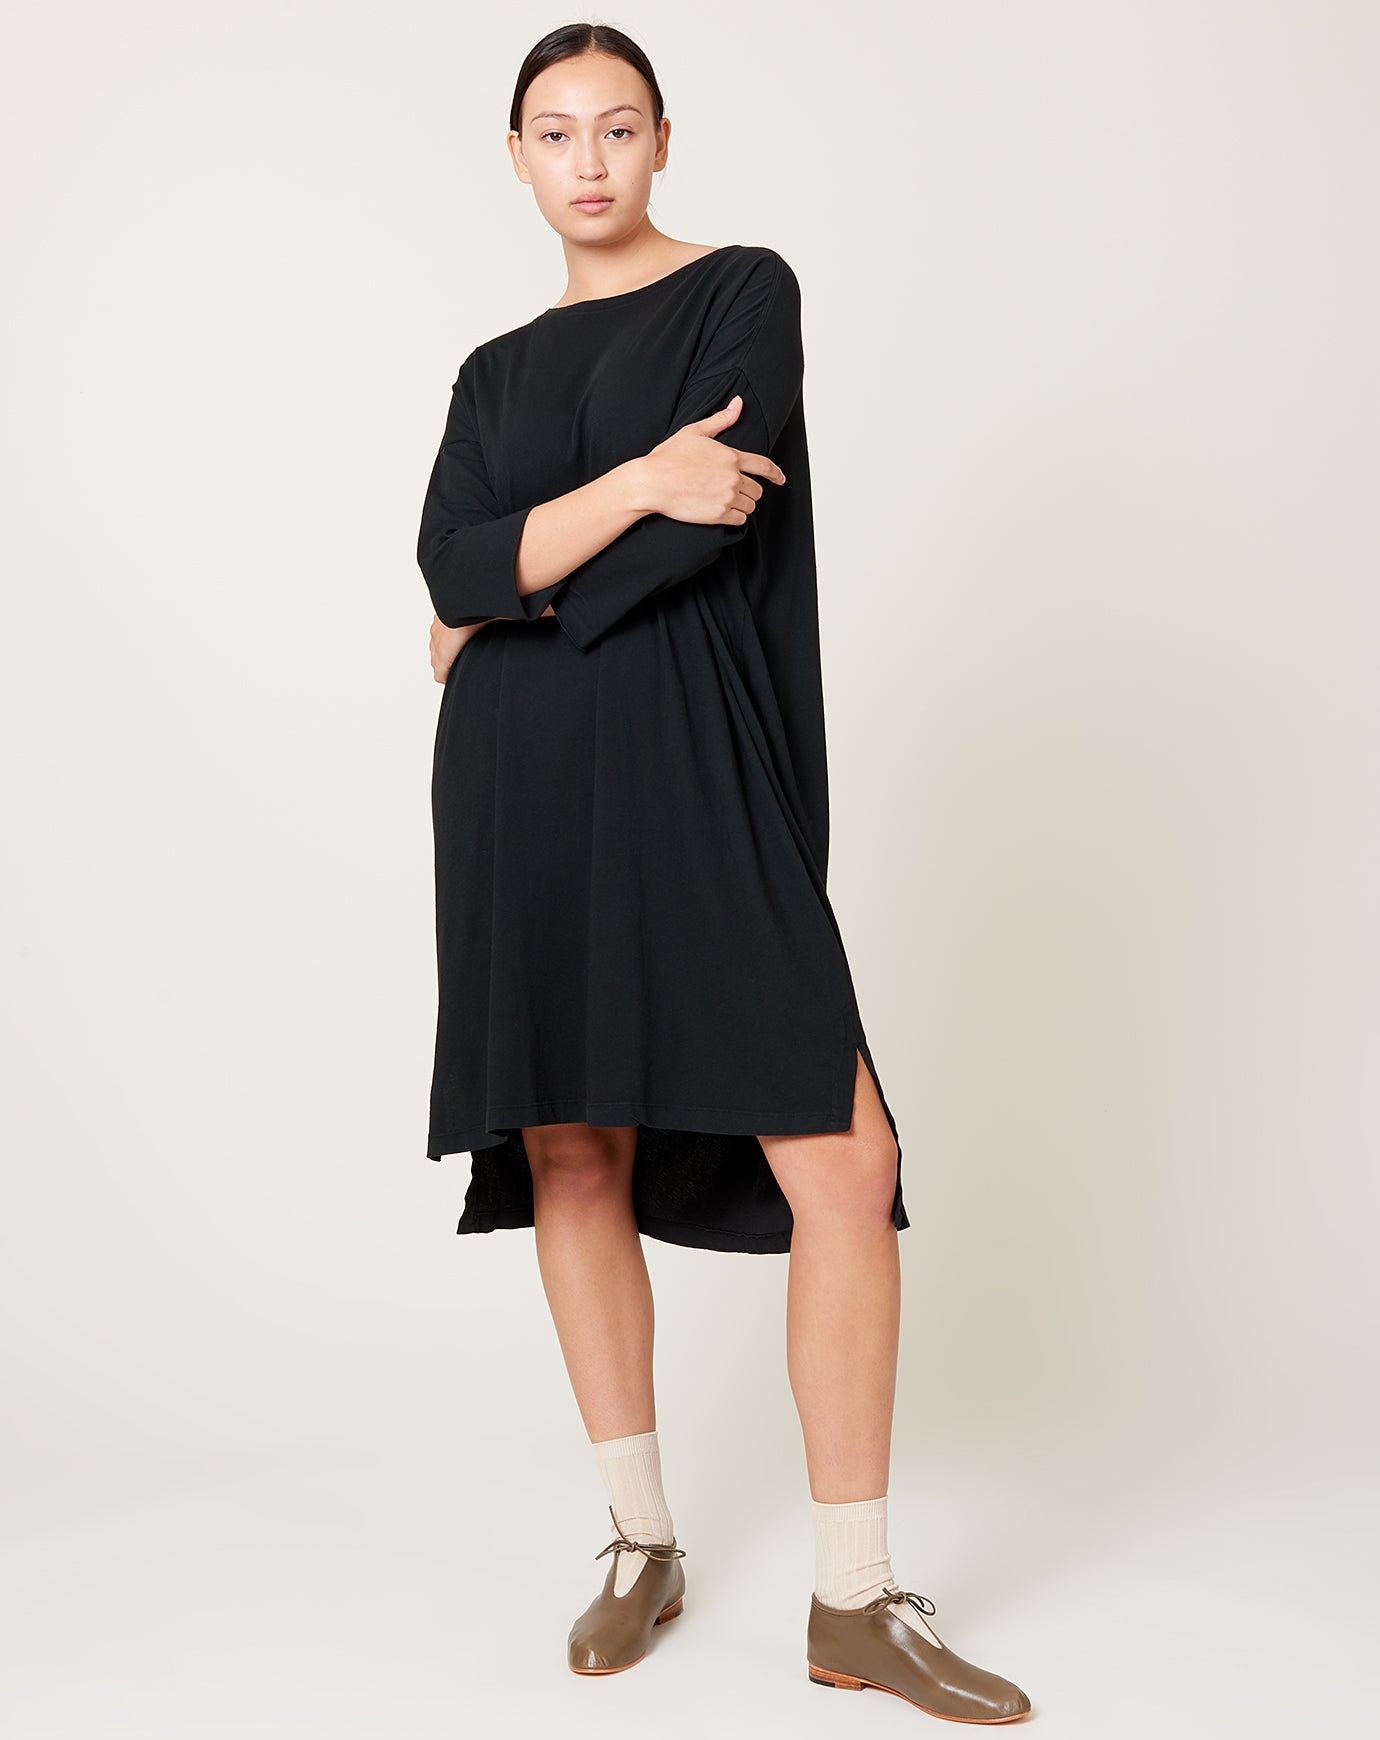 Cocoon Dress in Black